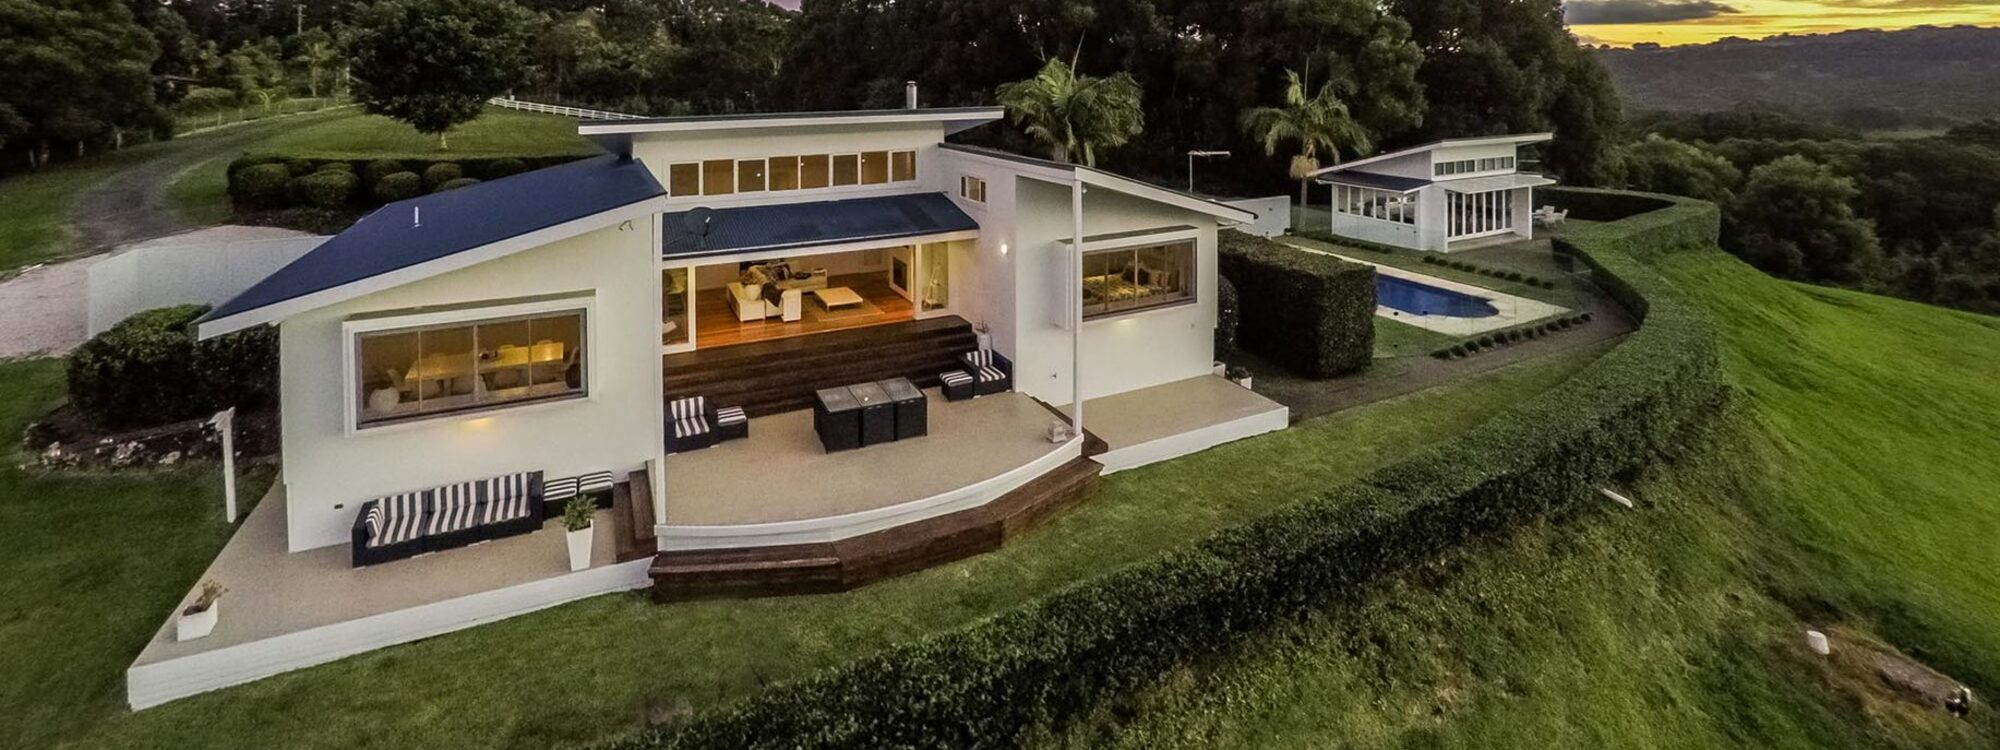 Byrons Brae - Byron Bay - Aerial Front of House c